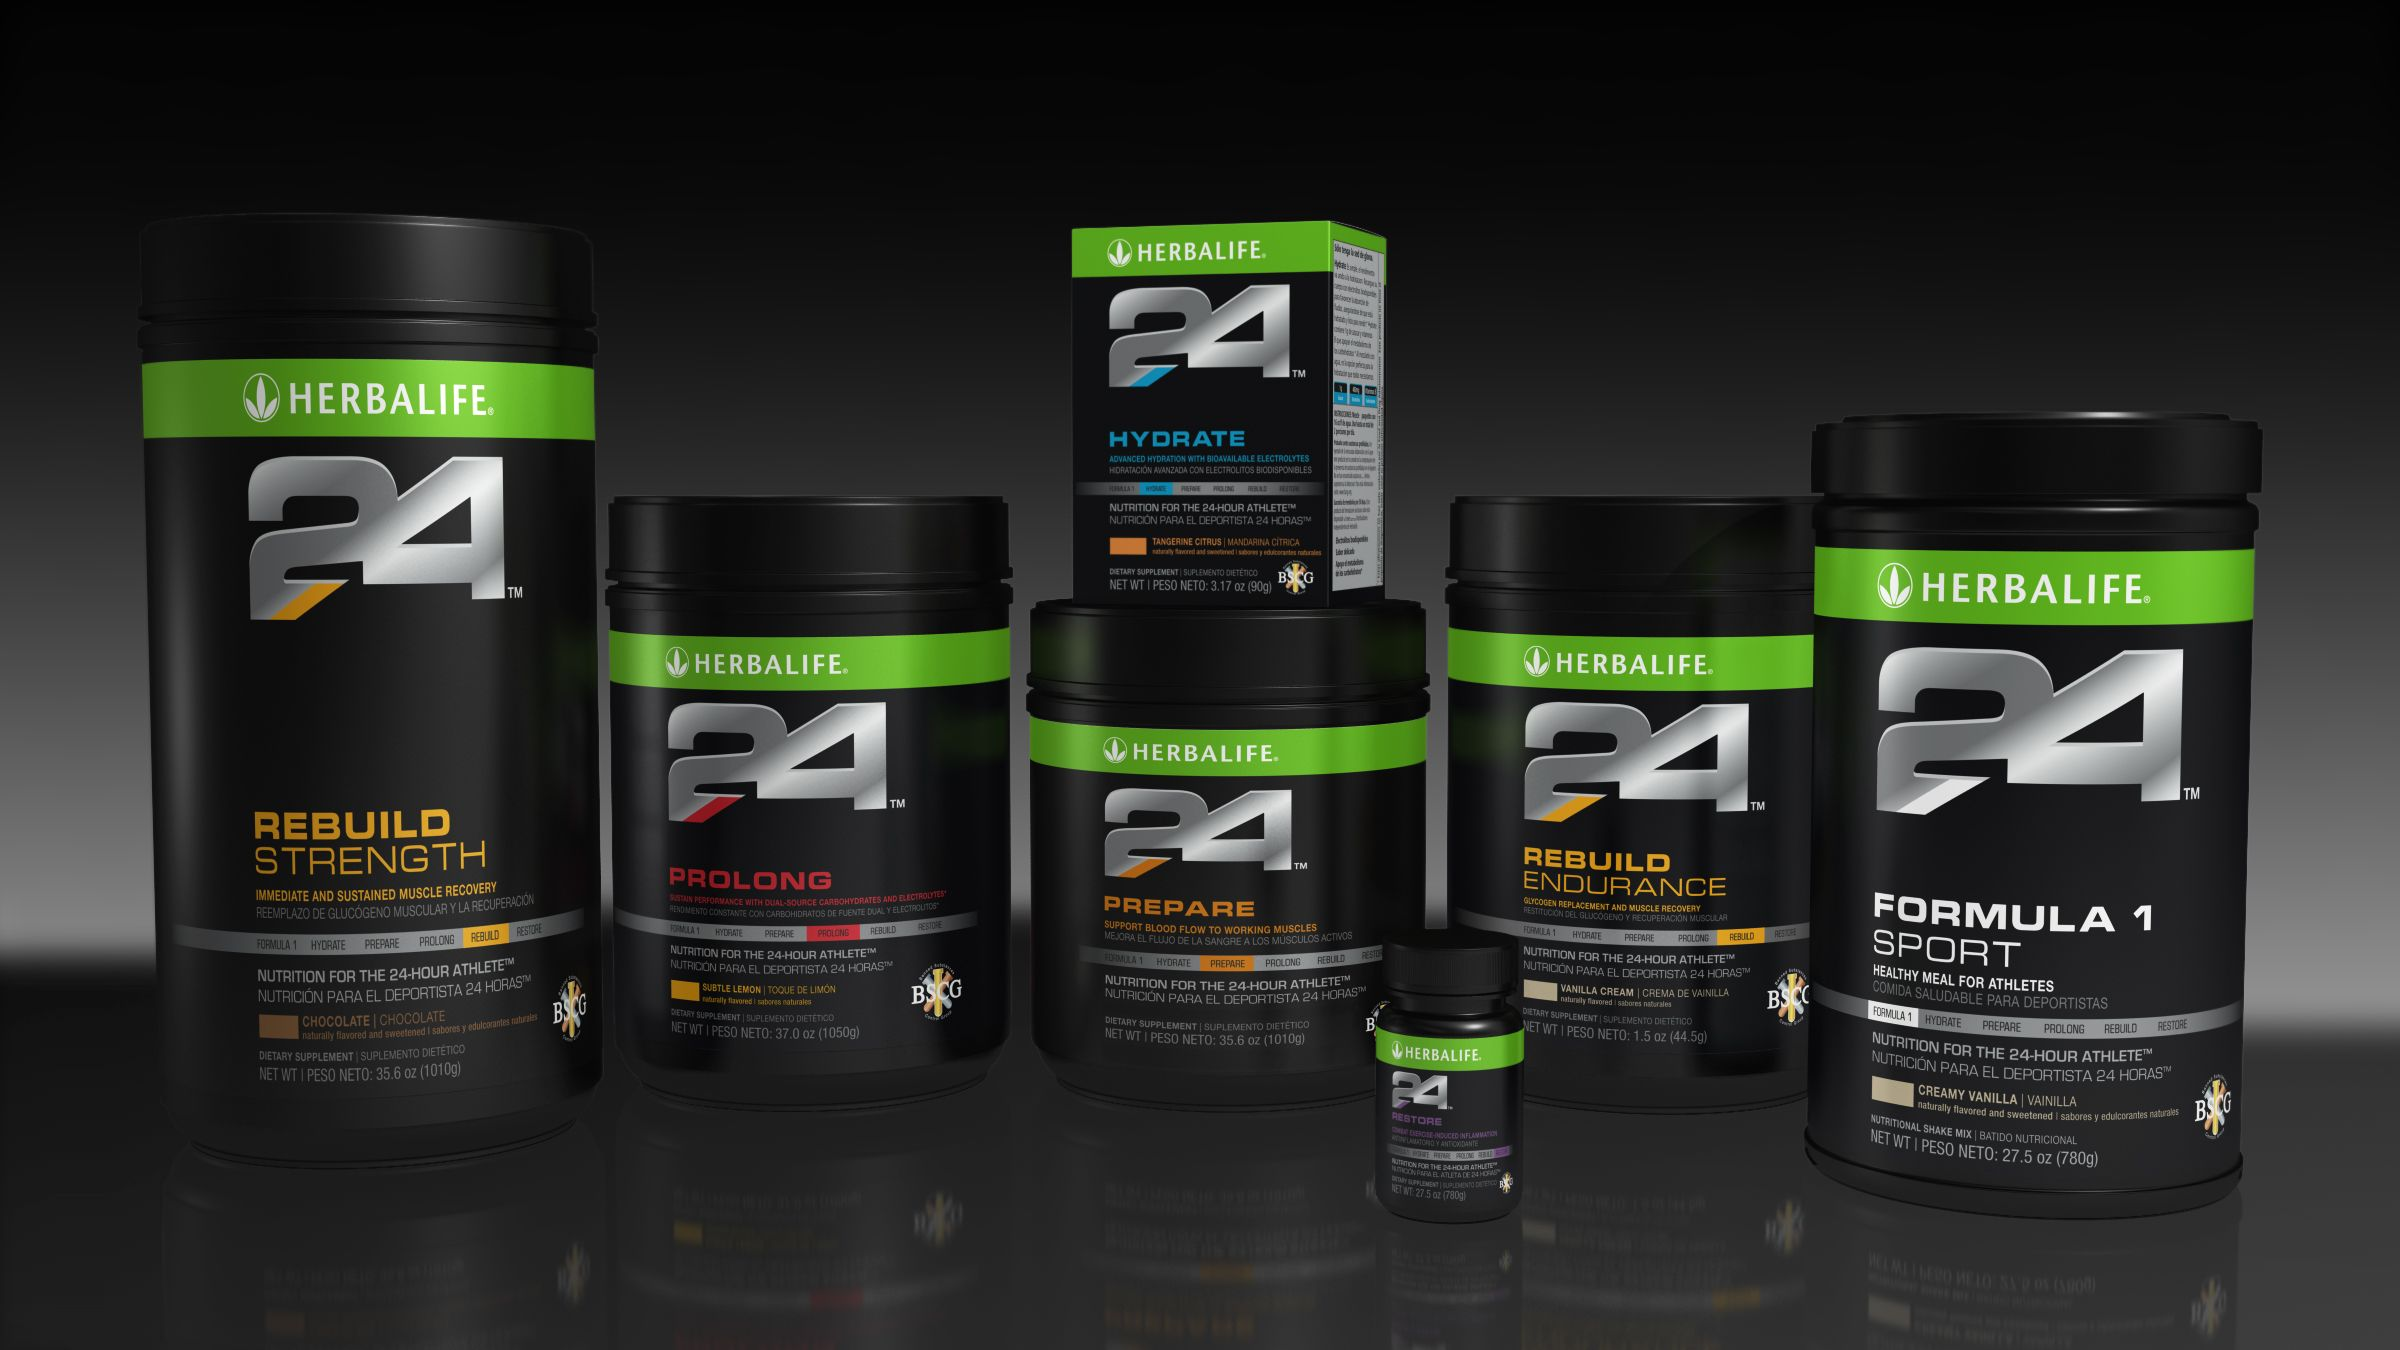 Herbalife24 3 Improve Your Performance And Recover Faster Www Goherbalife Com Tmayes Herbalife Herbalife 24 Herbalife Nutrition